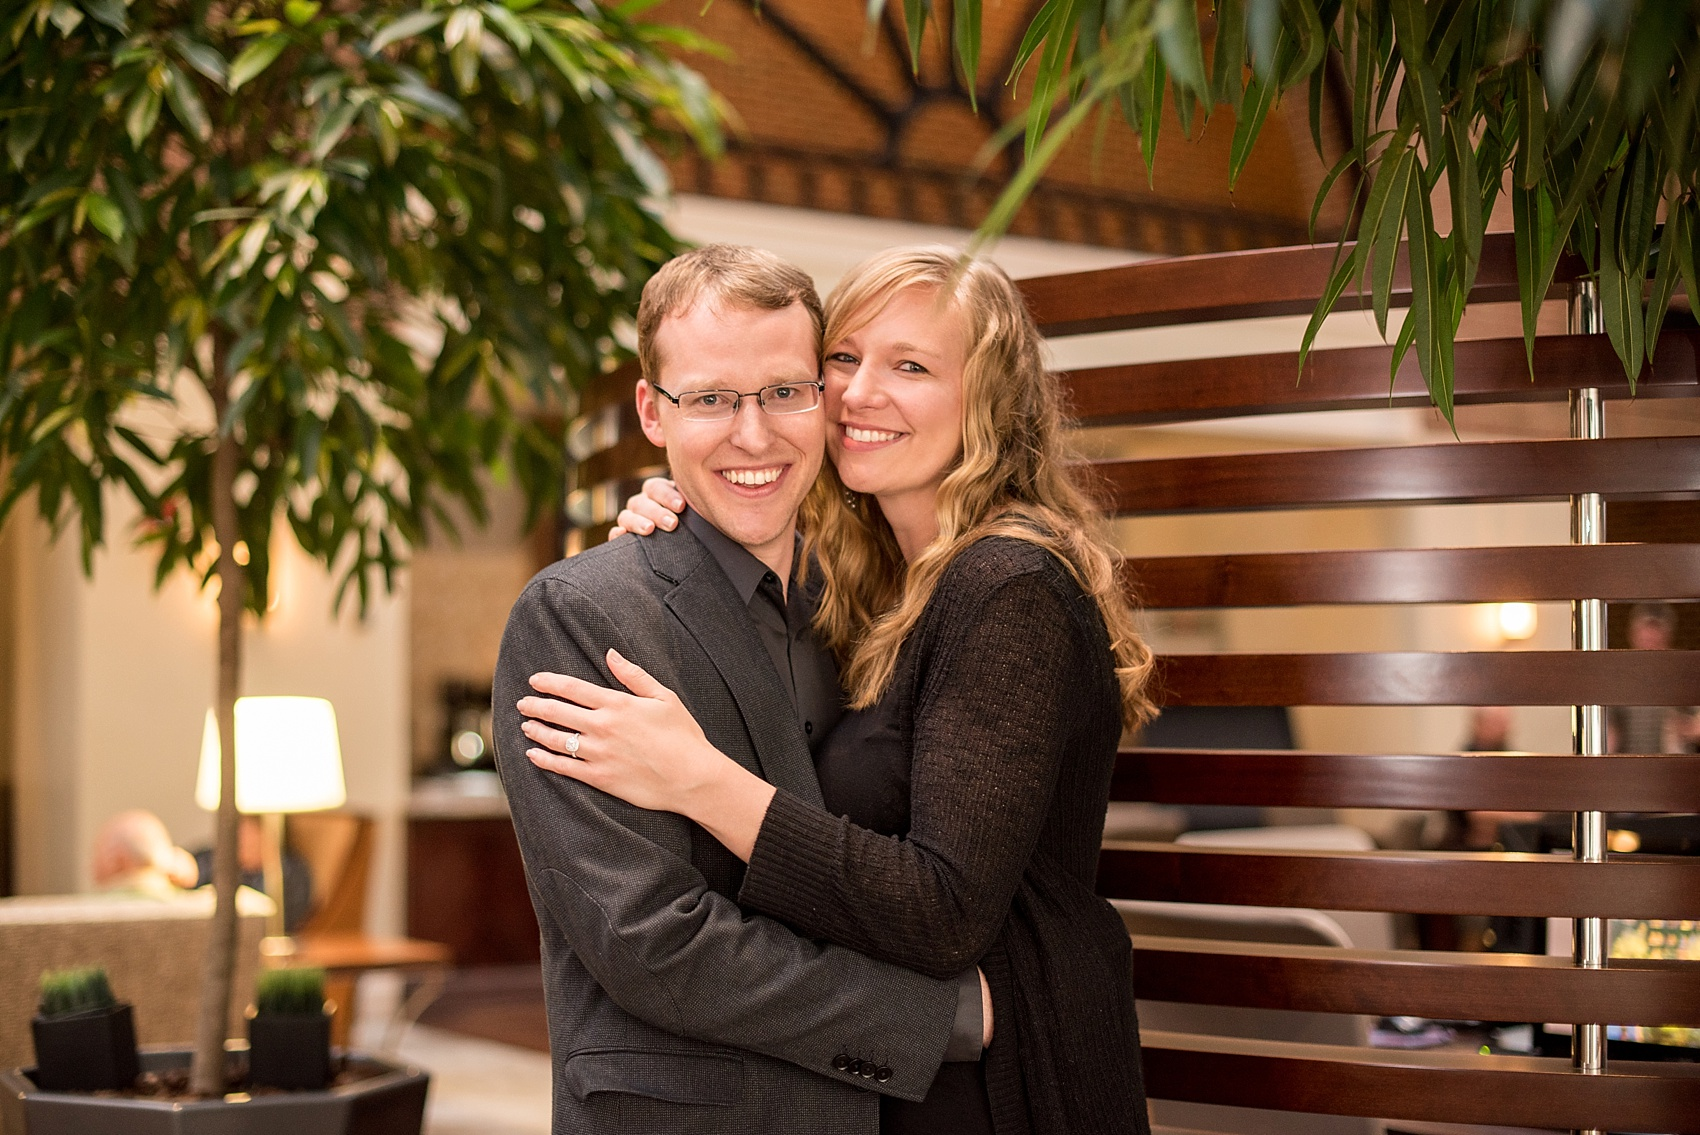 Raleigh wedding photographer, Mikkel Paige Photography, captures downtown #proposal.